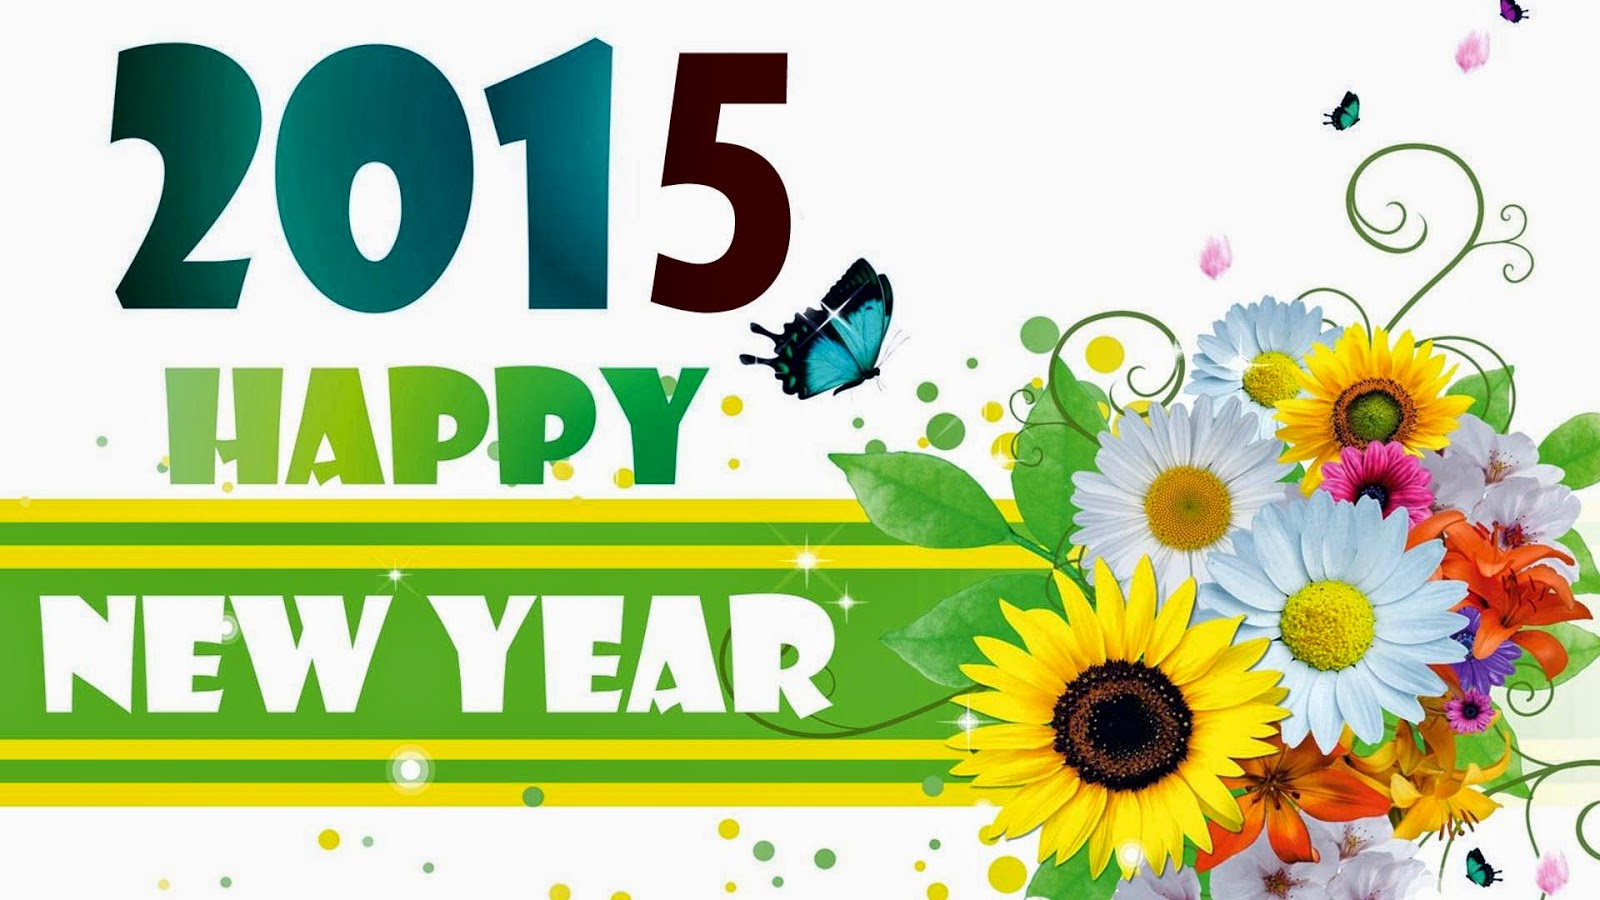 Happy new year 2015 images photos pictures happy new year 2015 wallpapers with flowers m4hsunfo